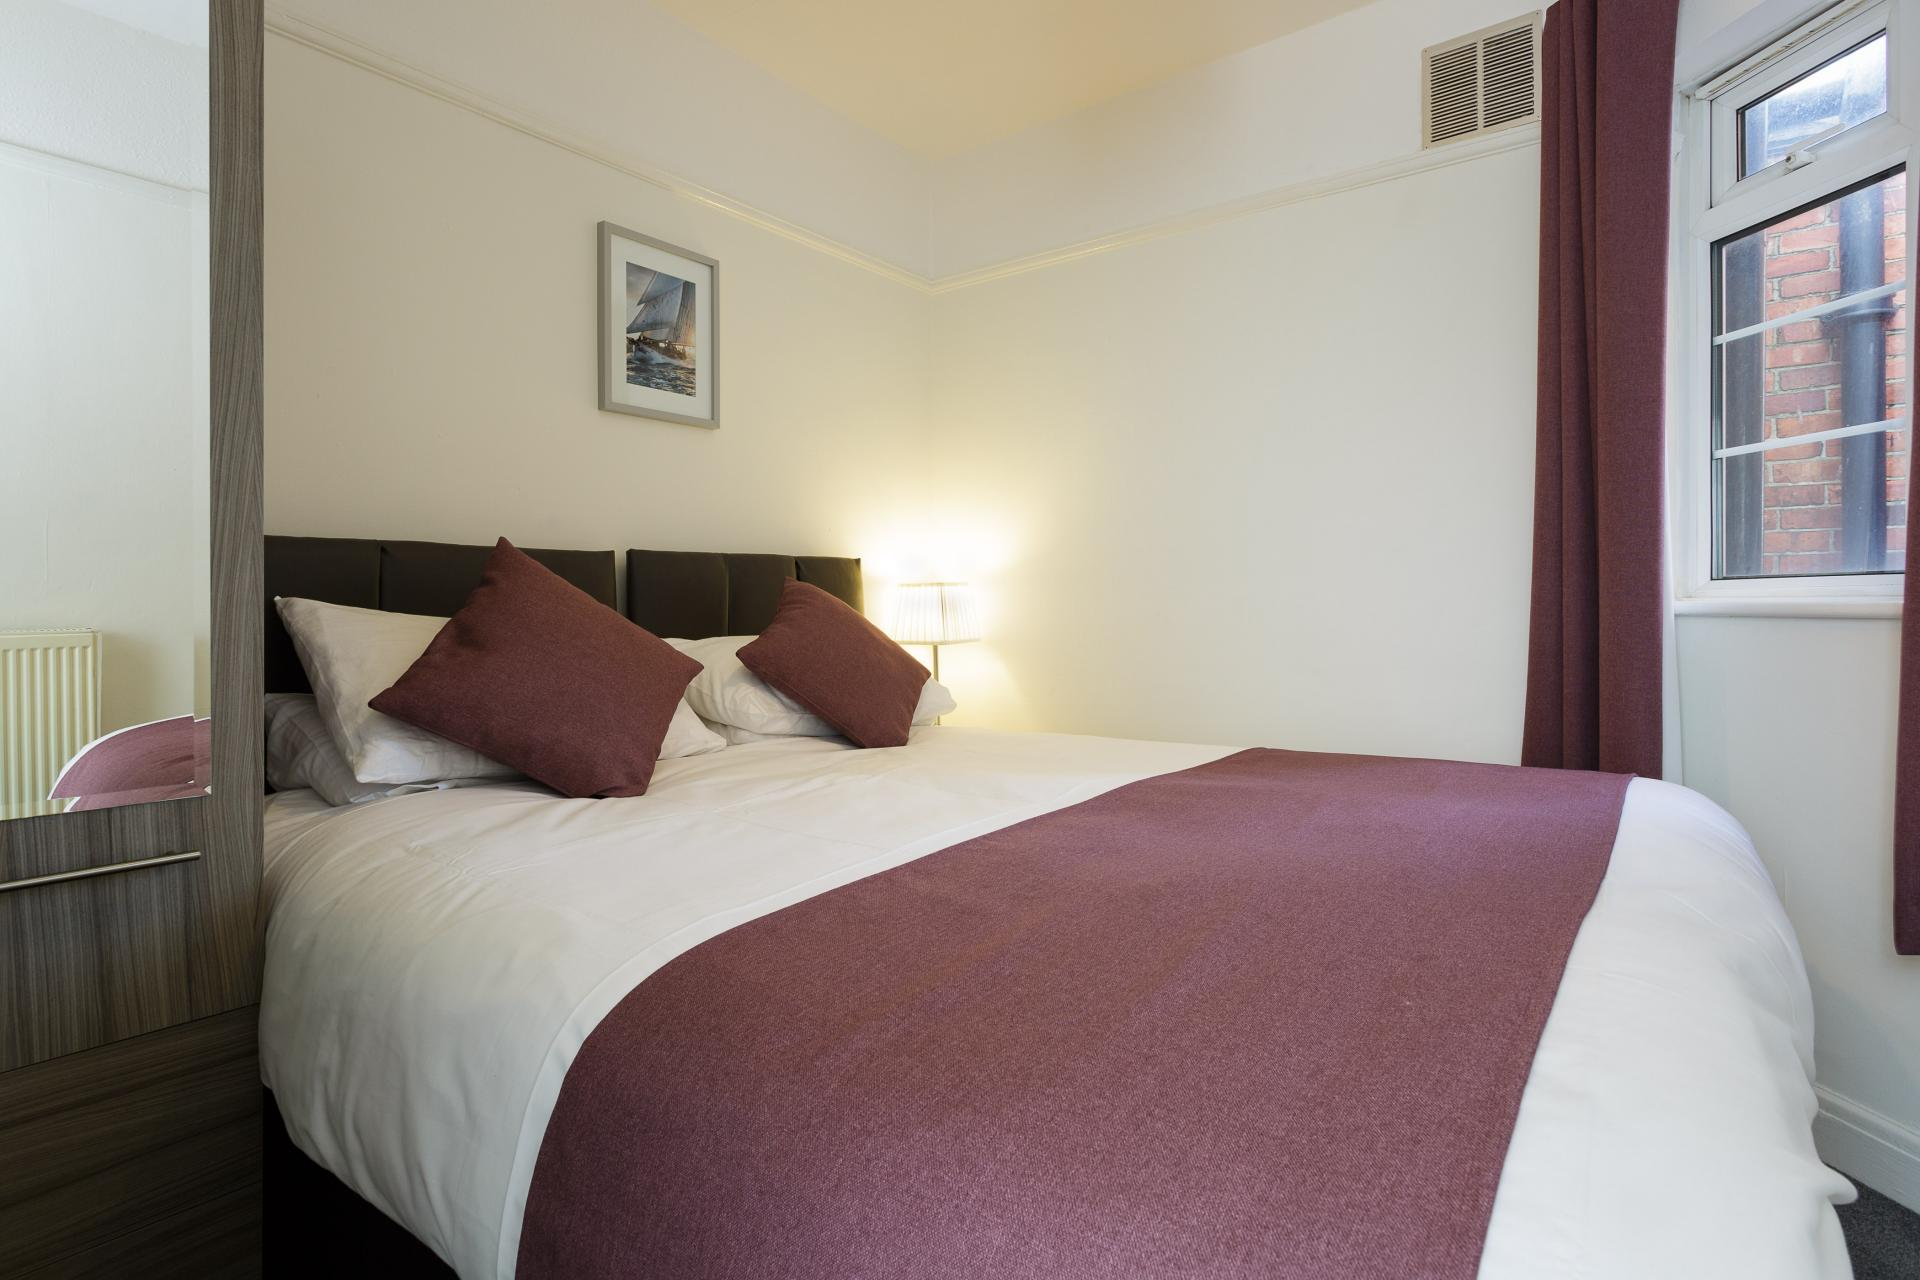 Bedroom at Braganza House Apartments, Old Portsmouth, Portsmouth